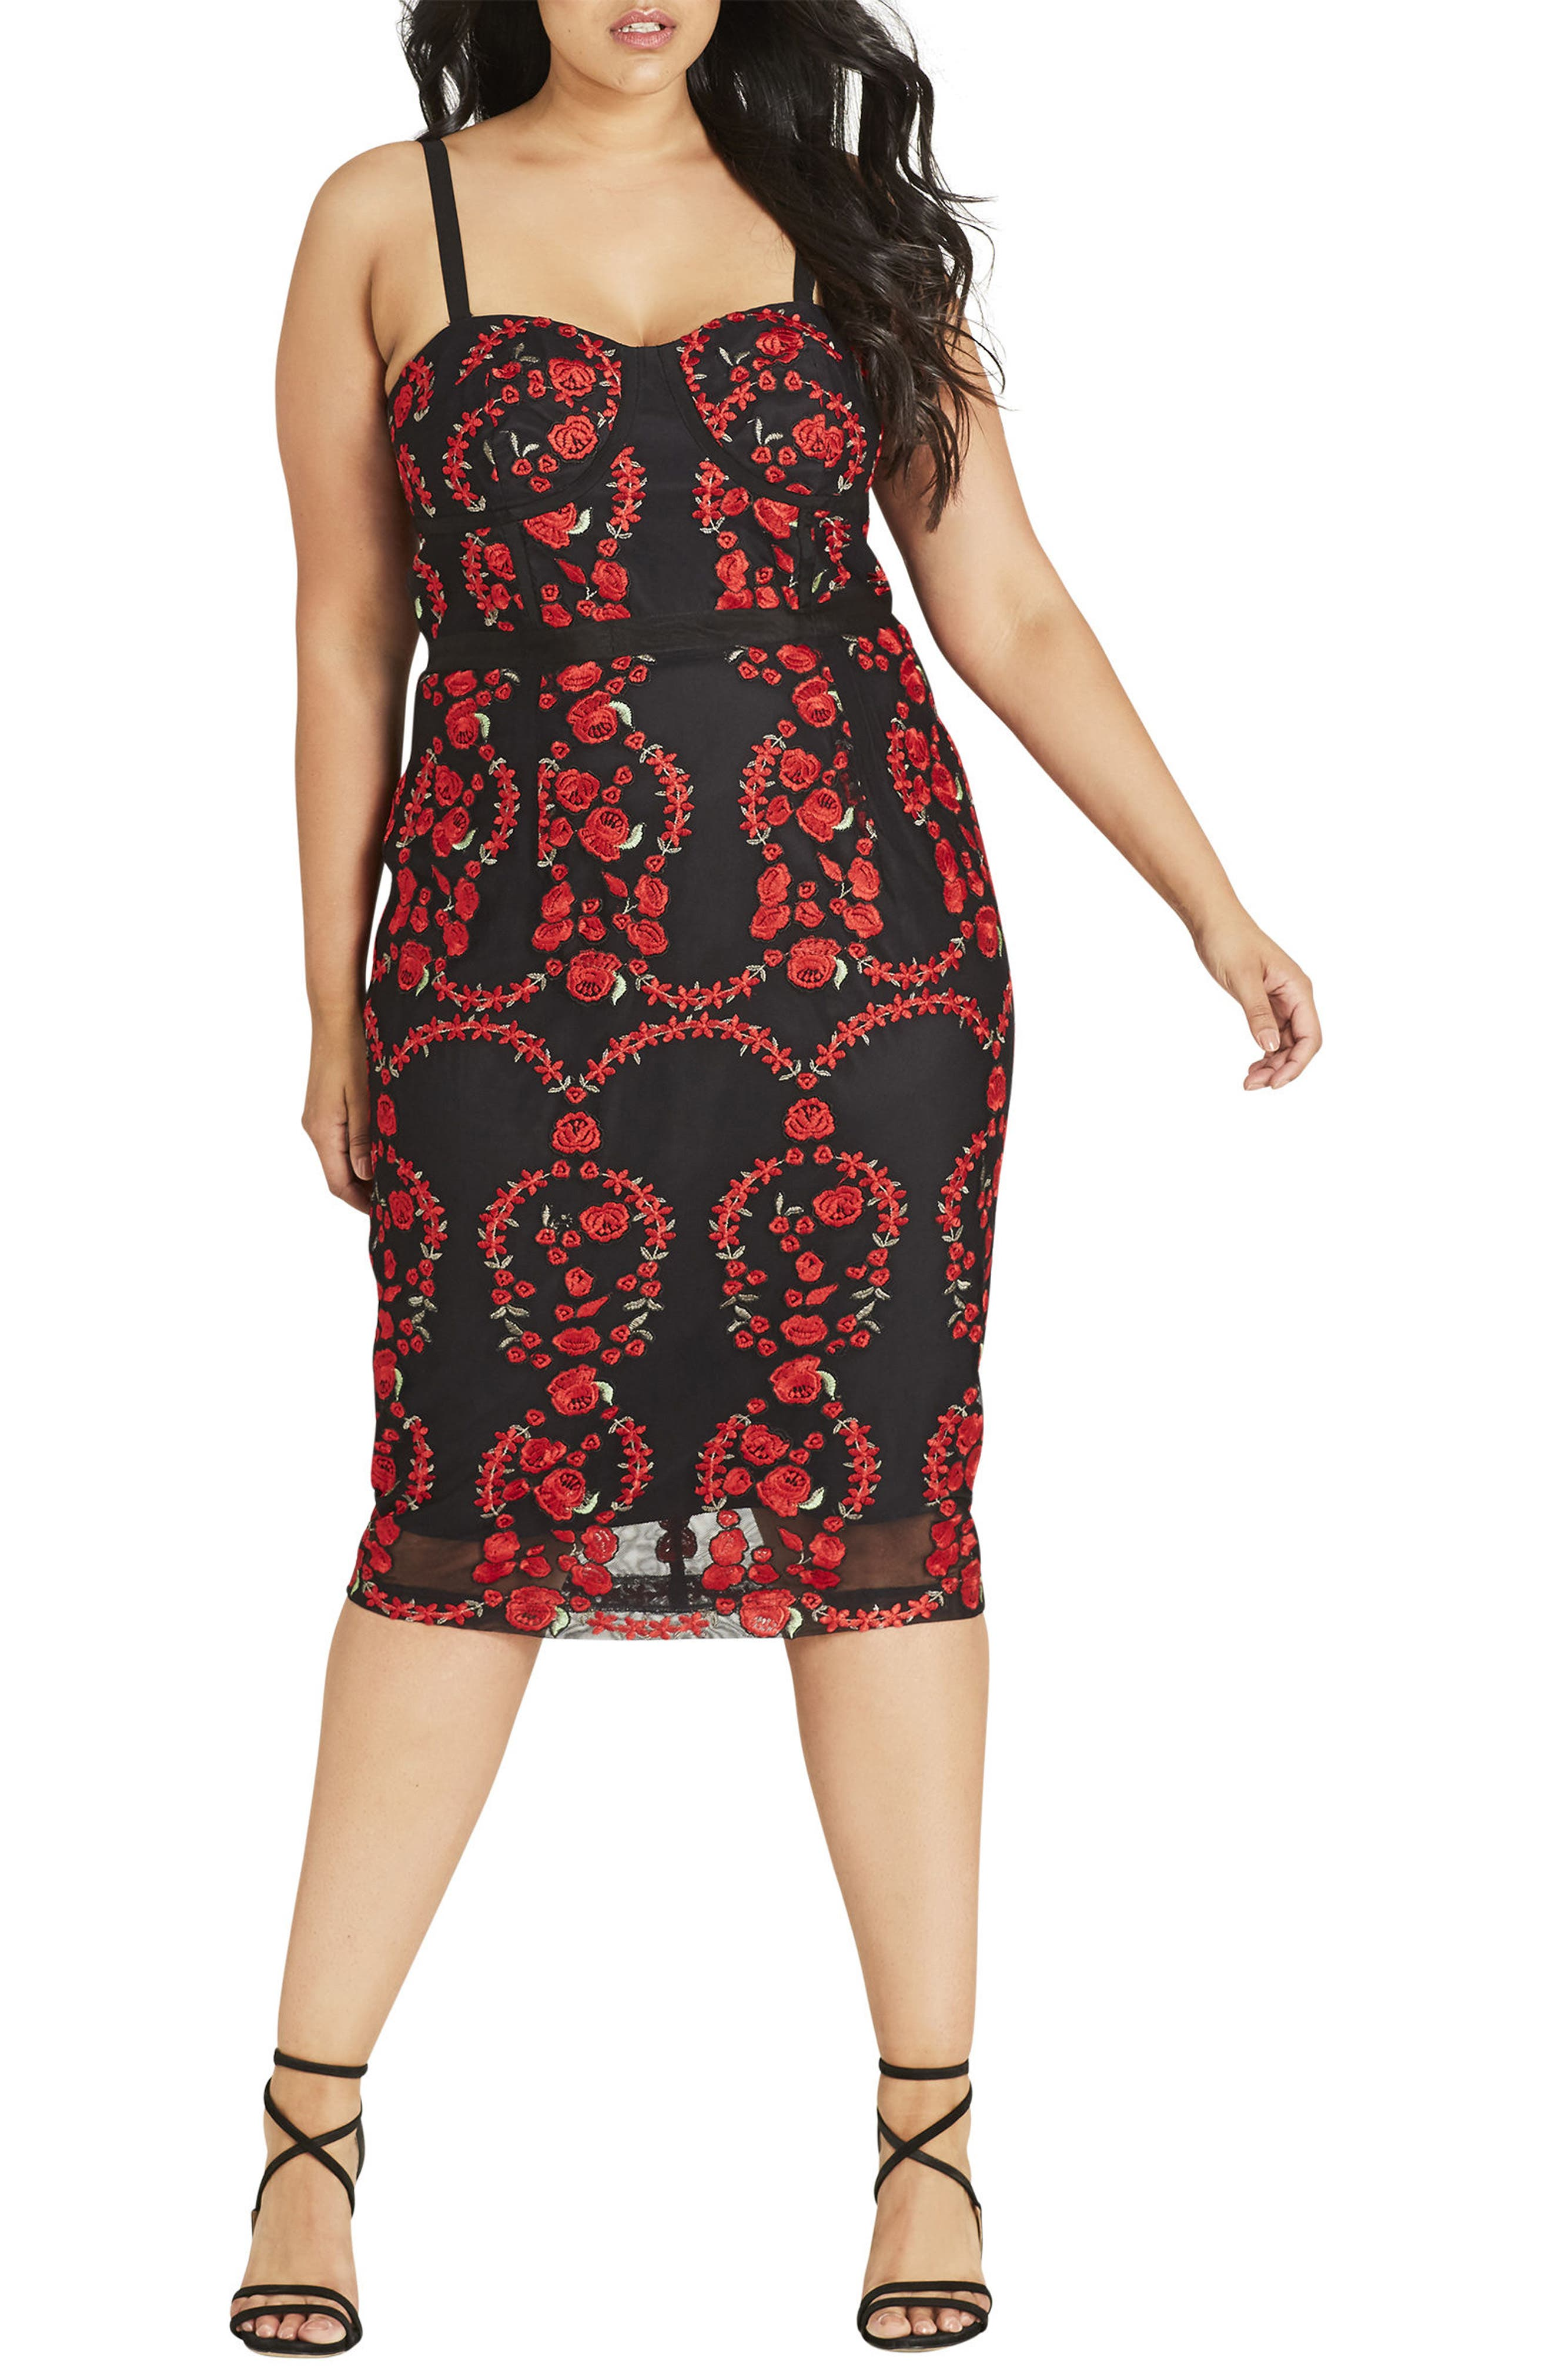 CITY CHIC Dolce Rose Embroidered Corset Dress, Main, color, BLACK